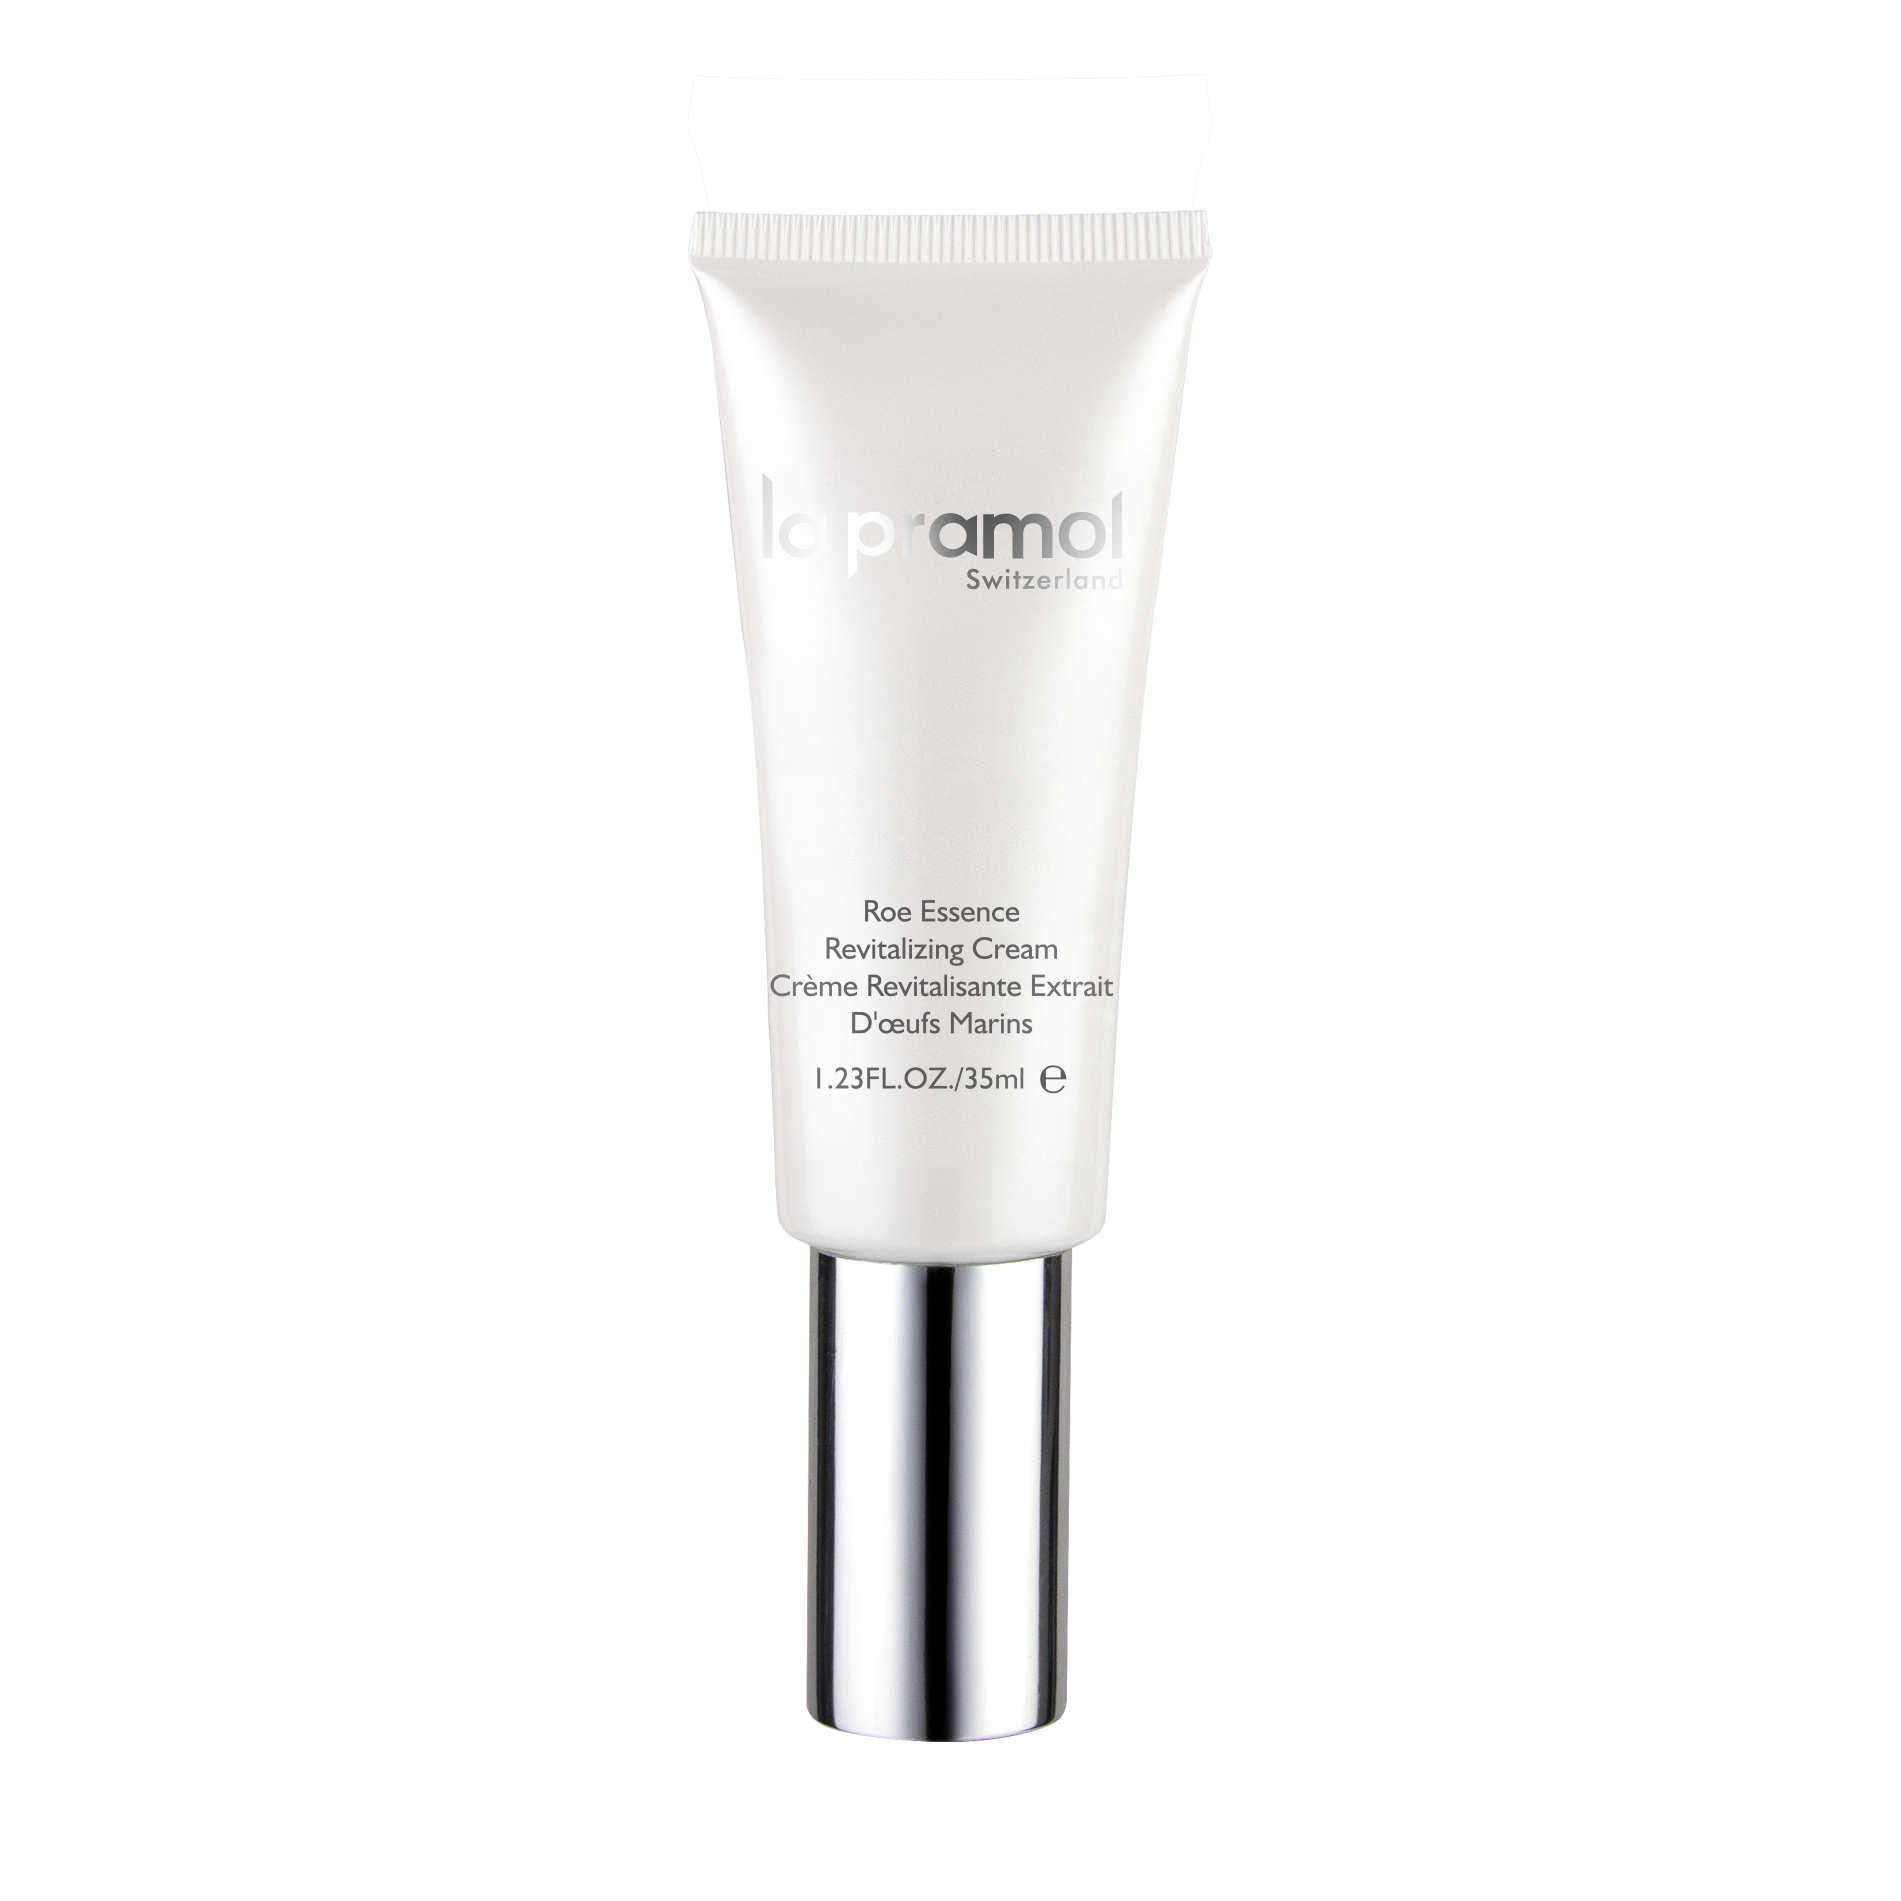 Roe Essence Revitalizing Cream